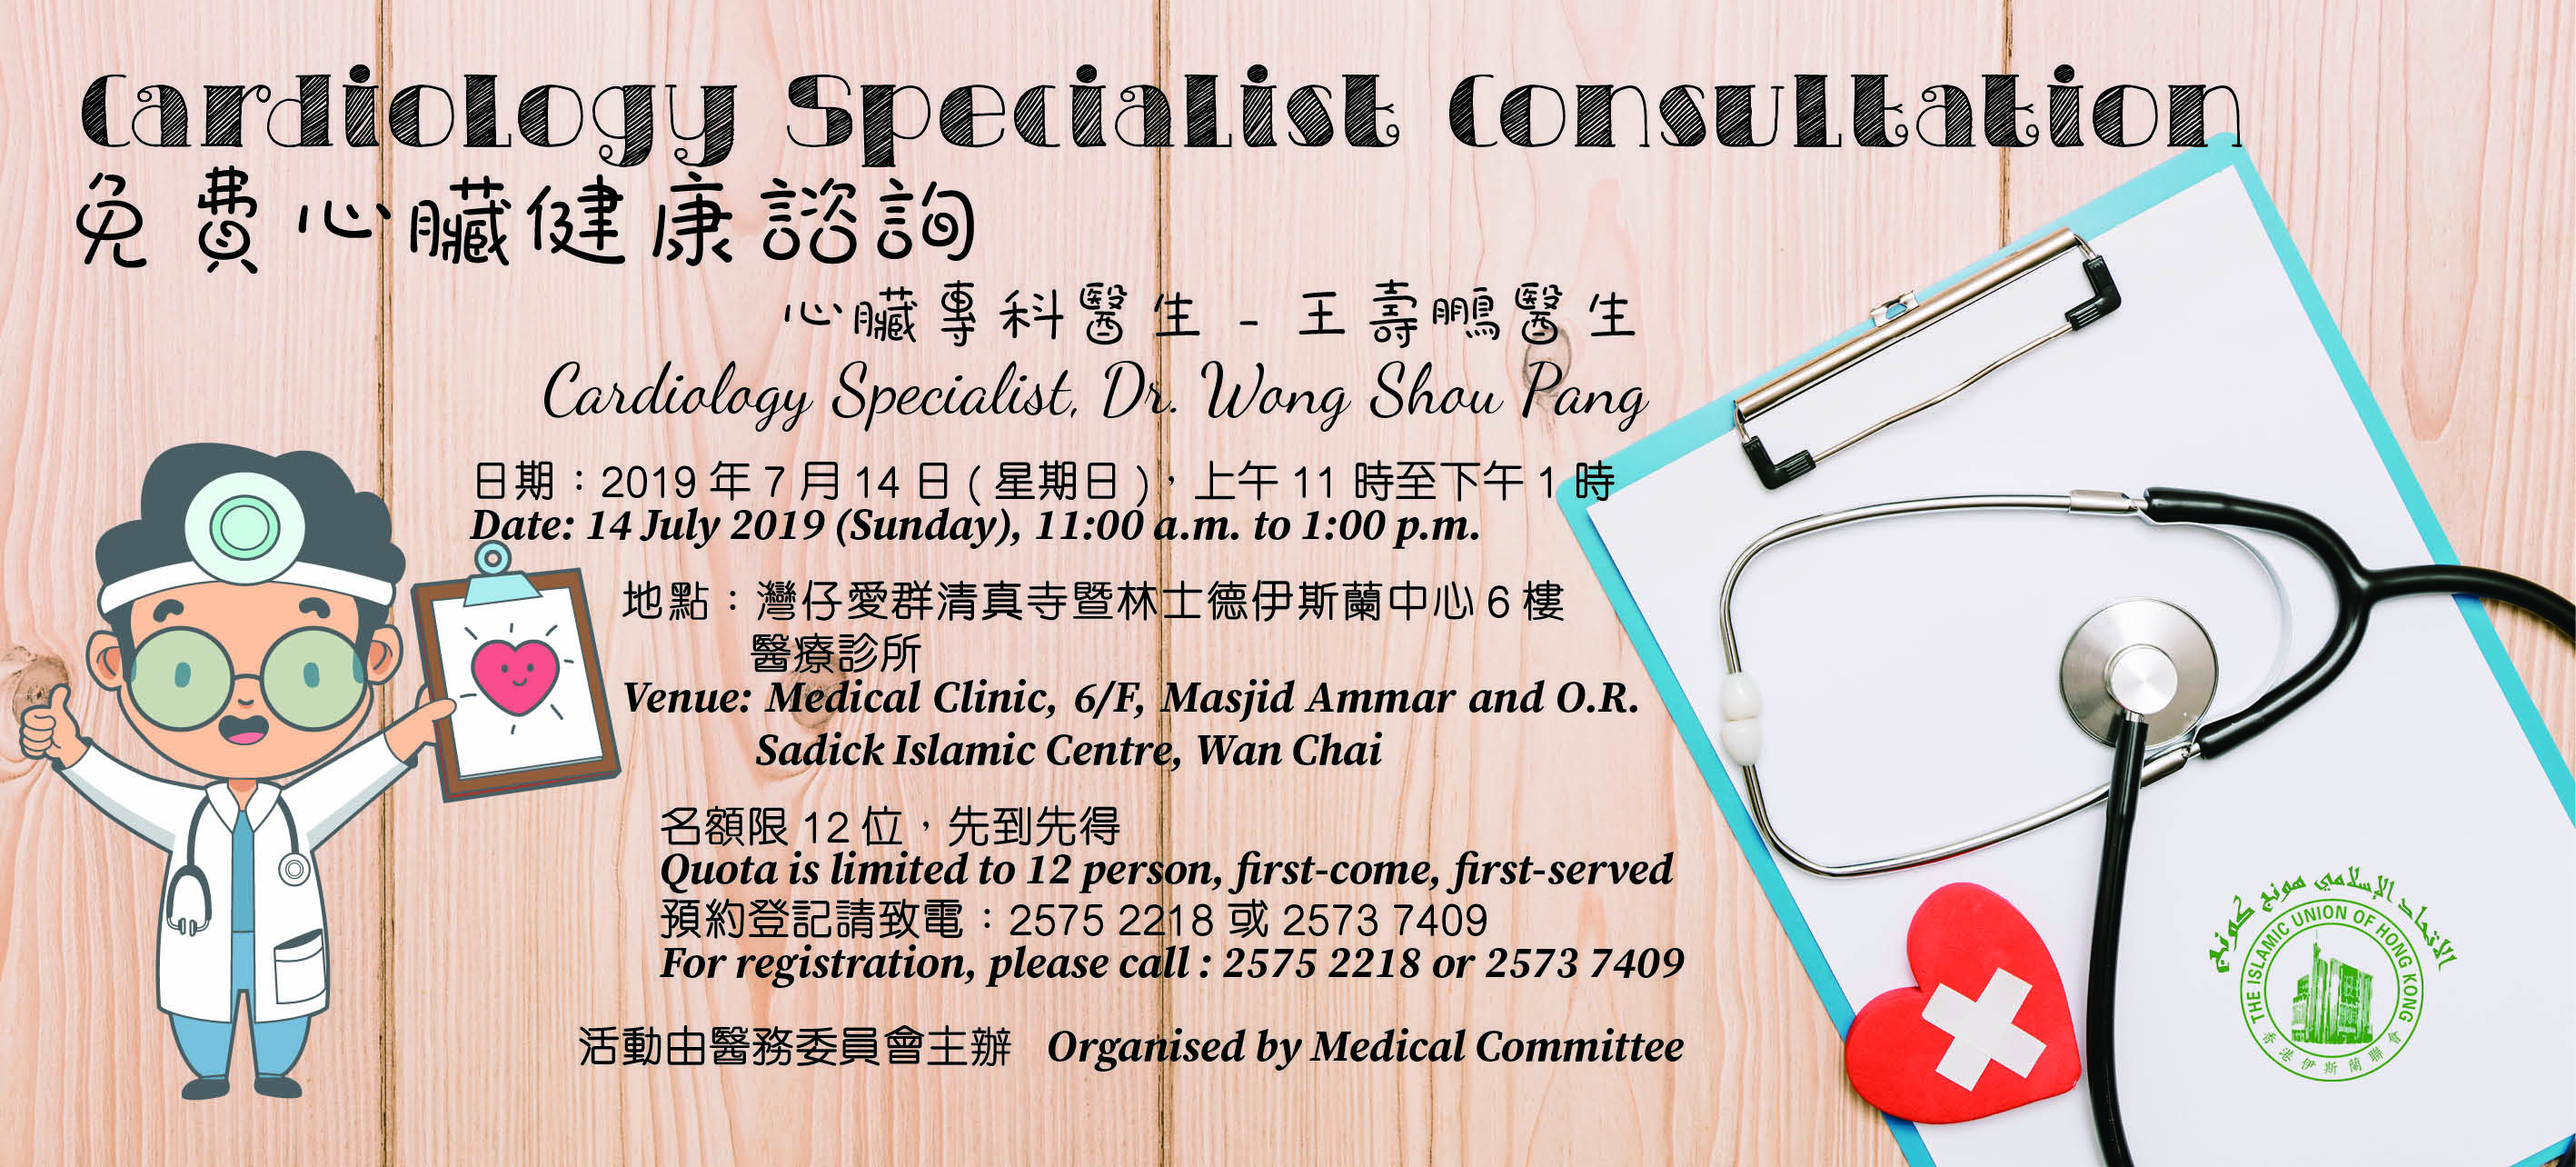 Free Cardiology Specialist Consultation